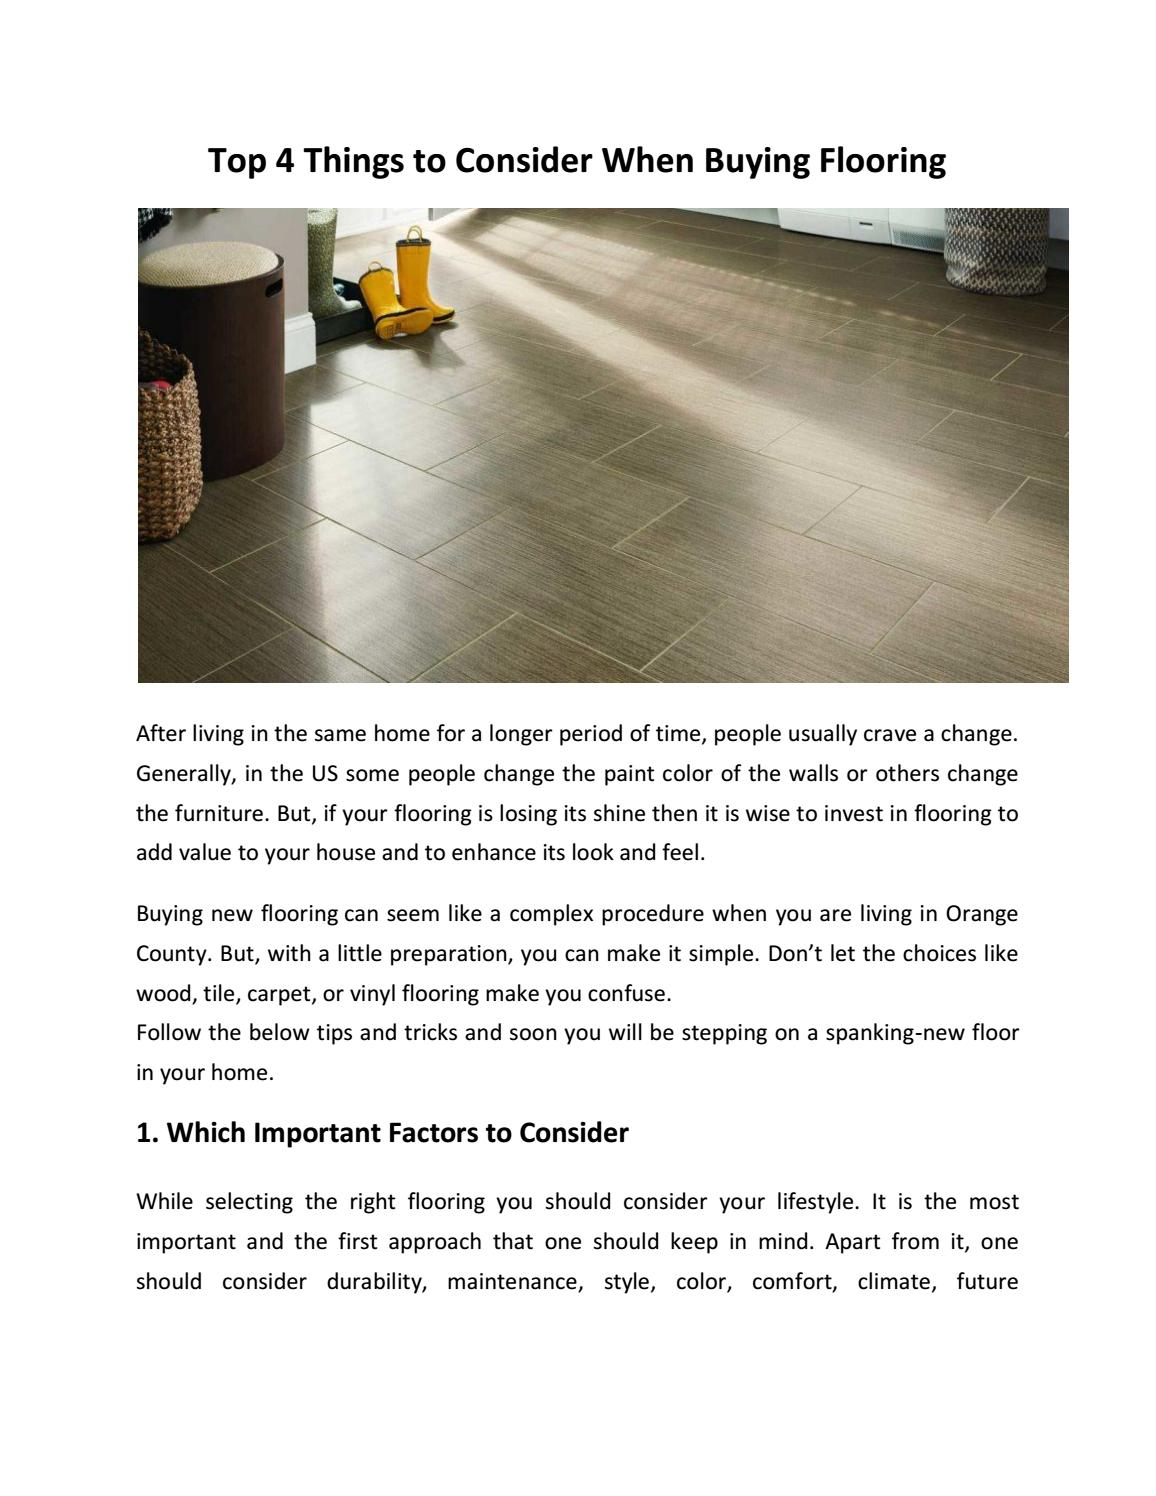 Top 4 Things To Consider When Buying Flooring By Flooring Discount